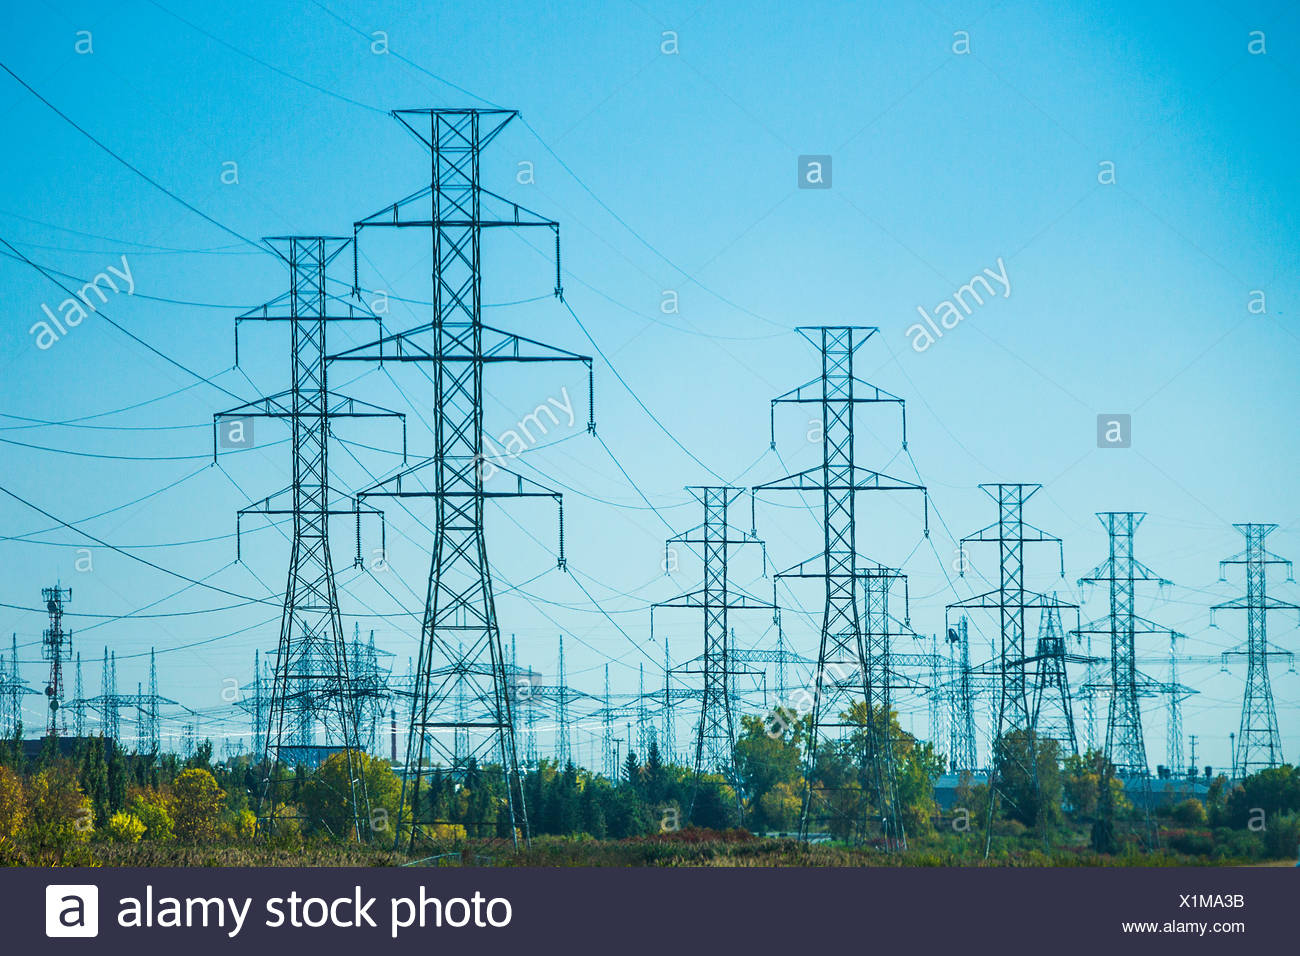 Canada, North America, Quebec, electricity, energy, high, industrial, industry, power, towers, voltage - Stock Image